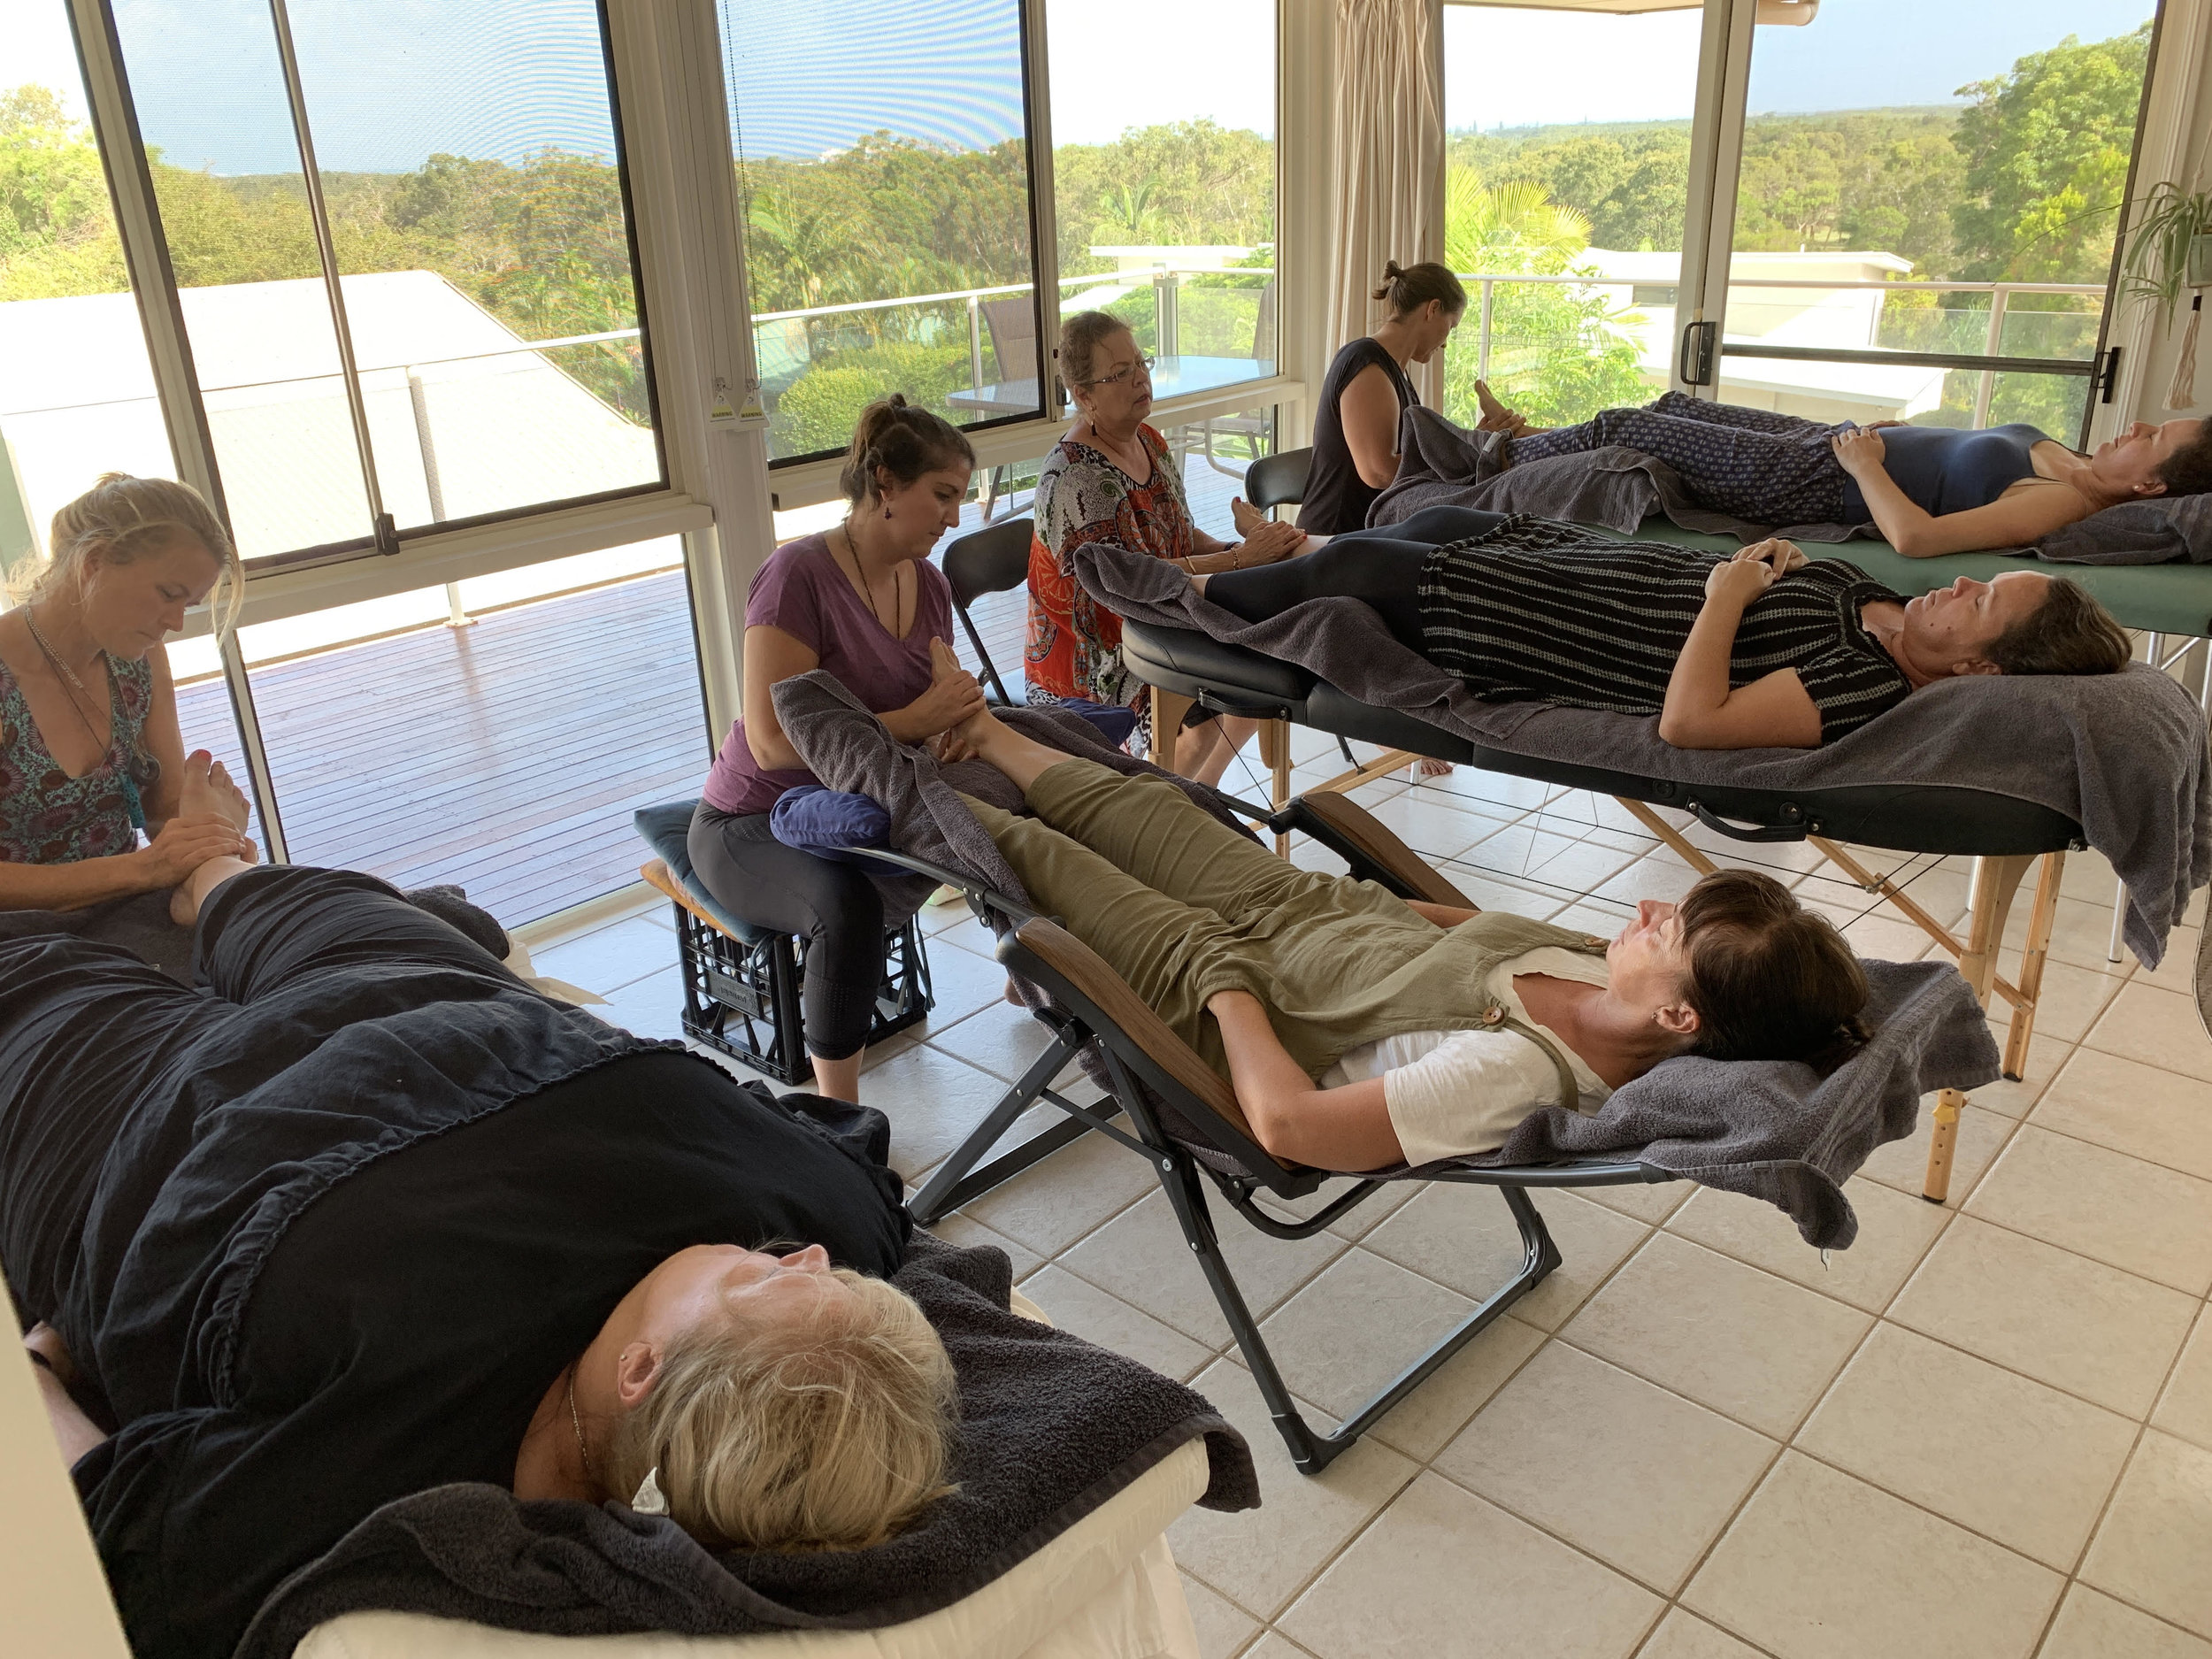 Reflexology Workshop Mt Coolum Feb. 2019